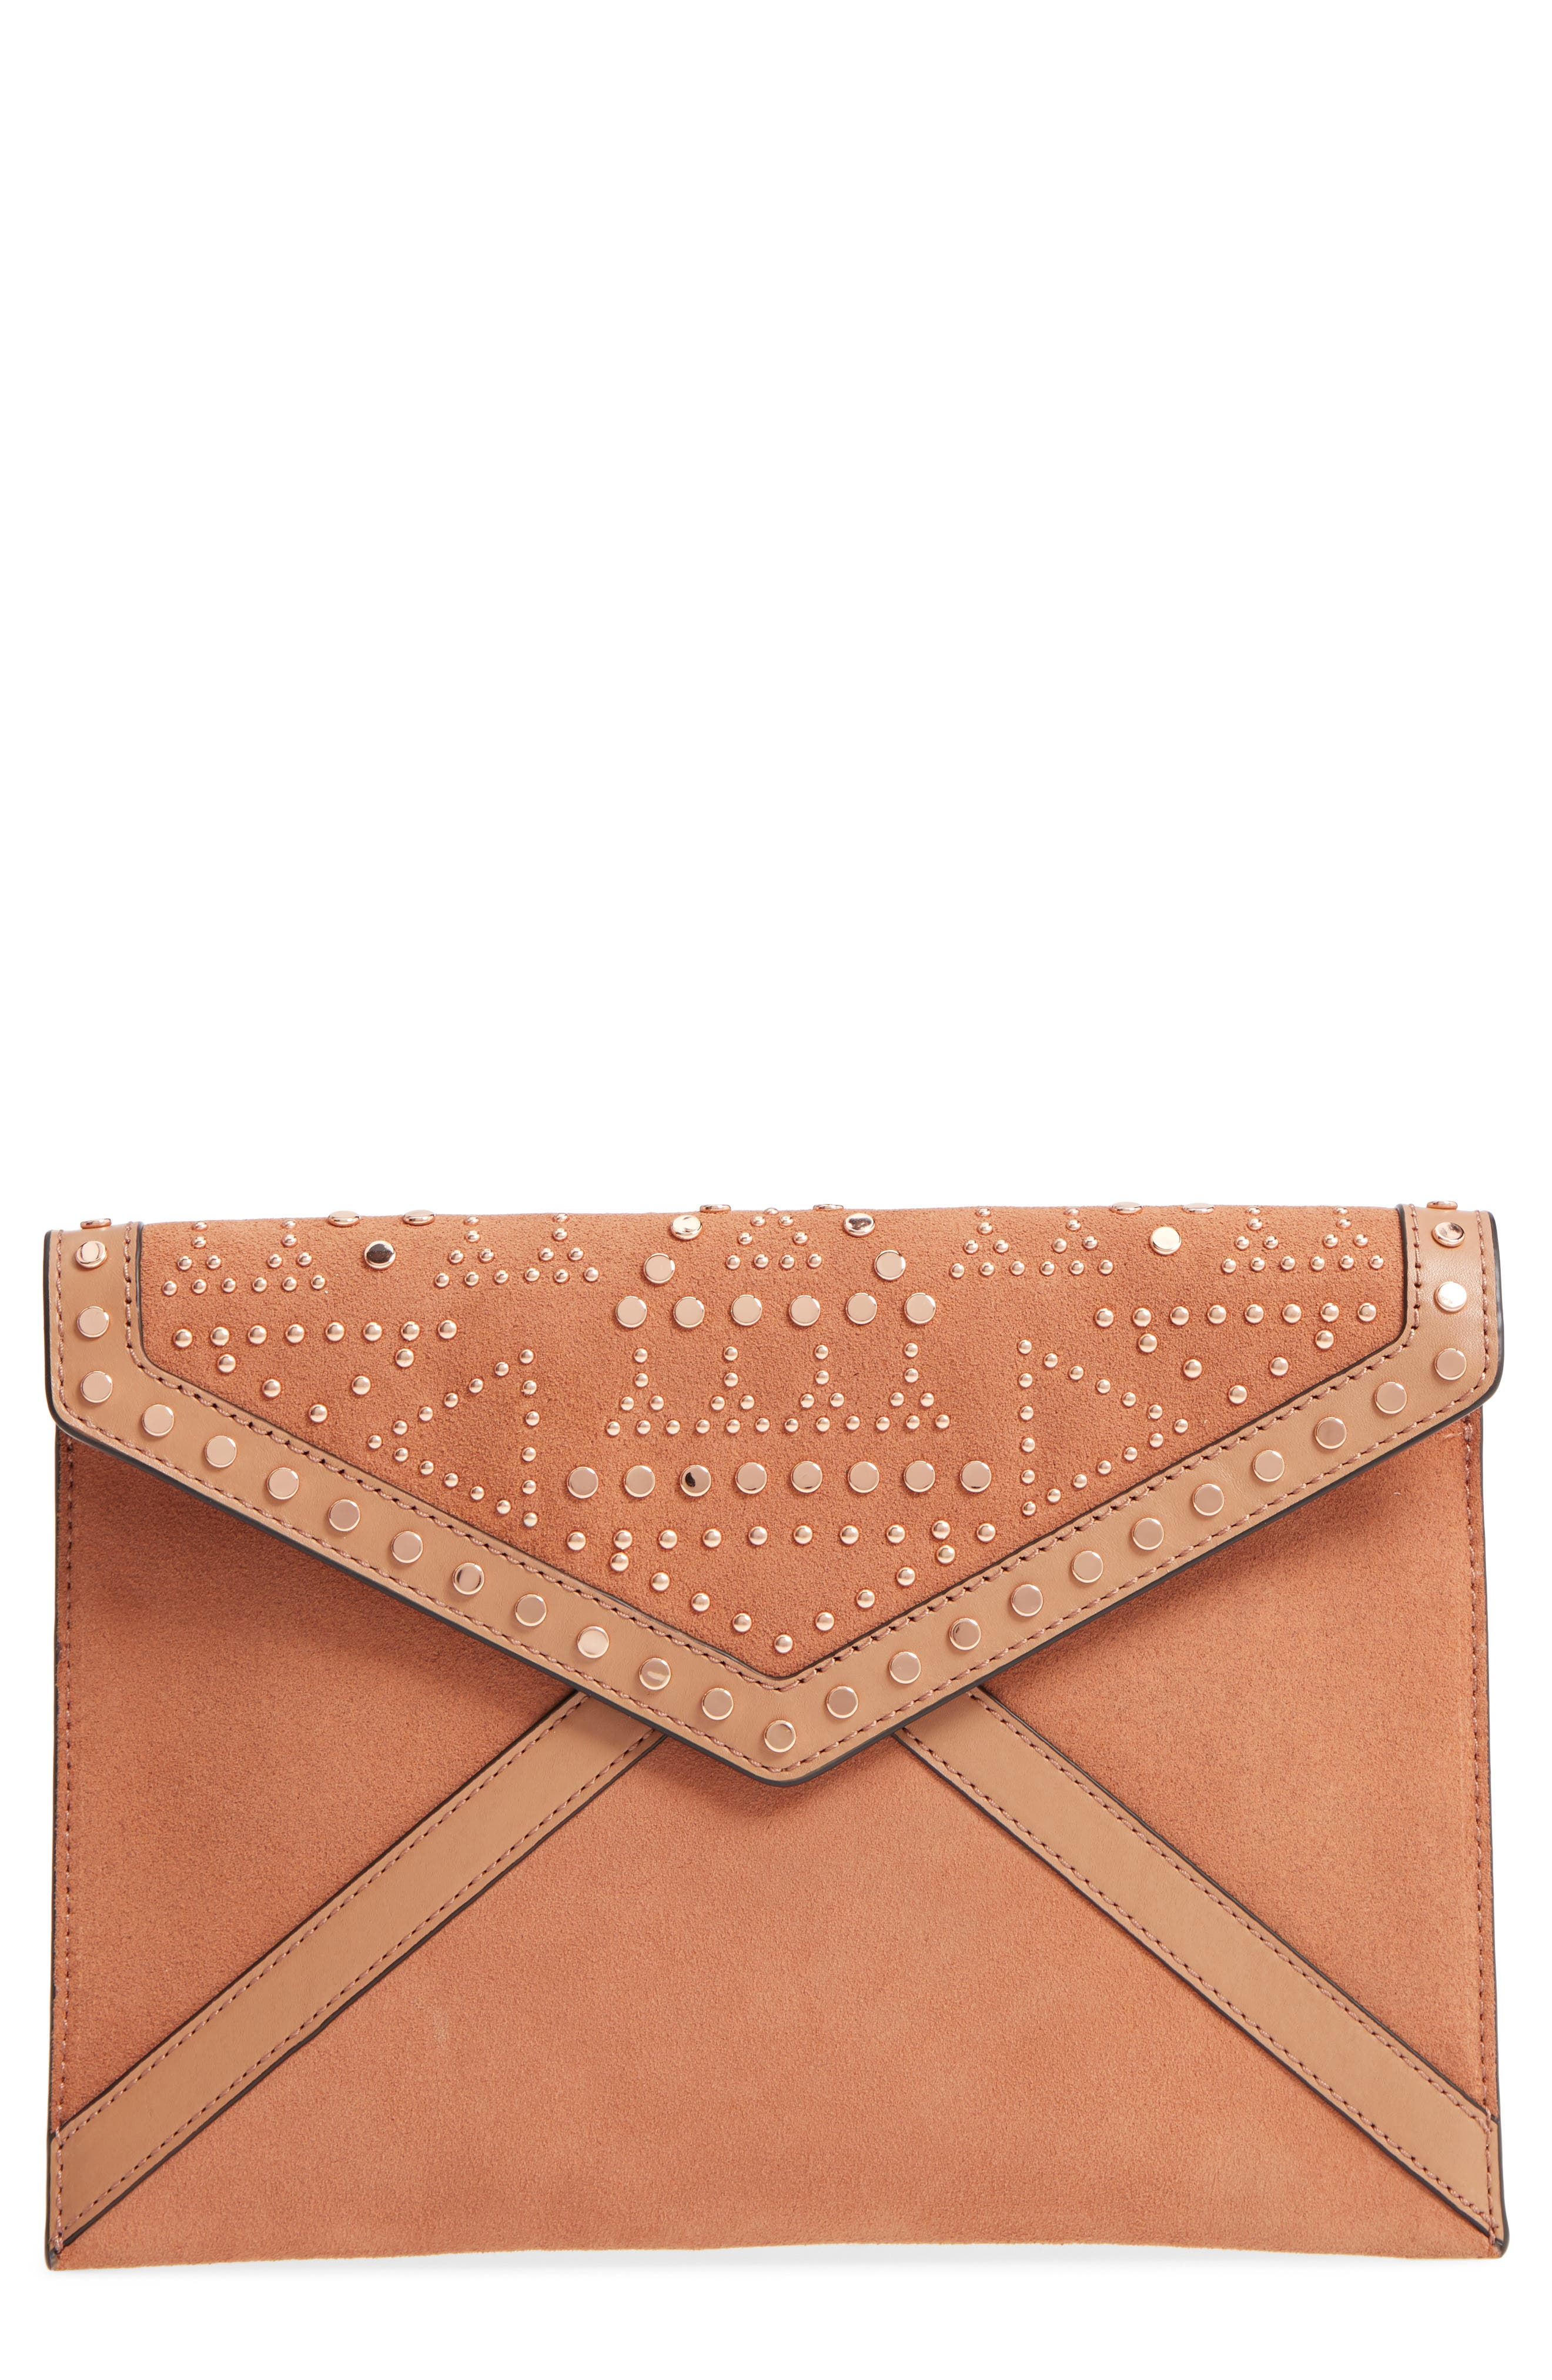 Leo Studded Leather & Suede Clutch,                             Main thumbnail 1, color,                             Desert Tan